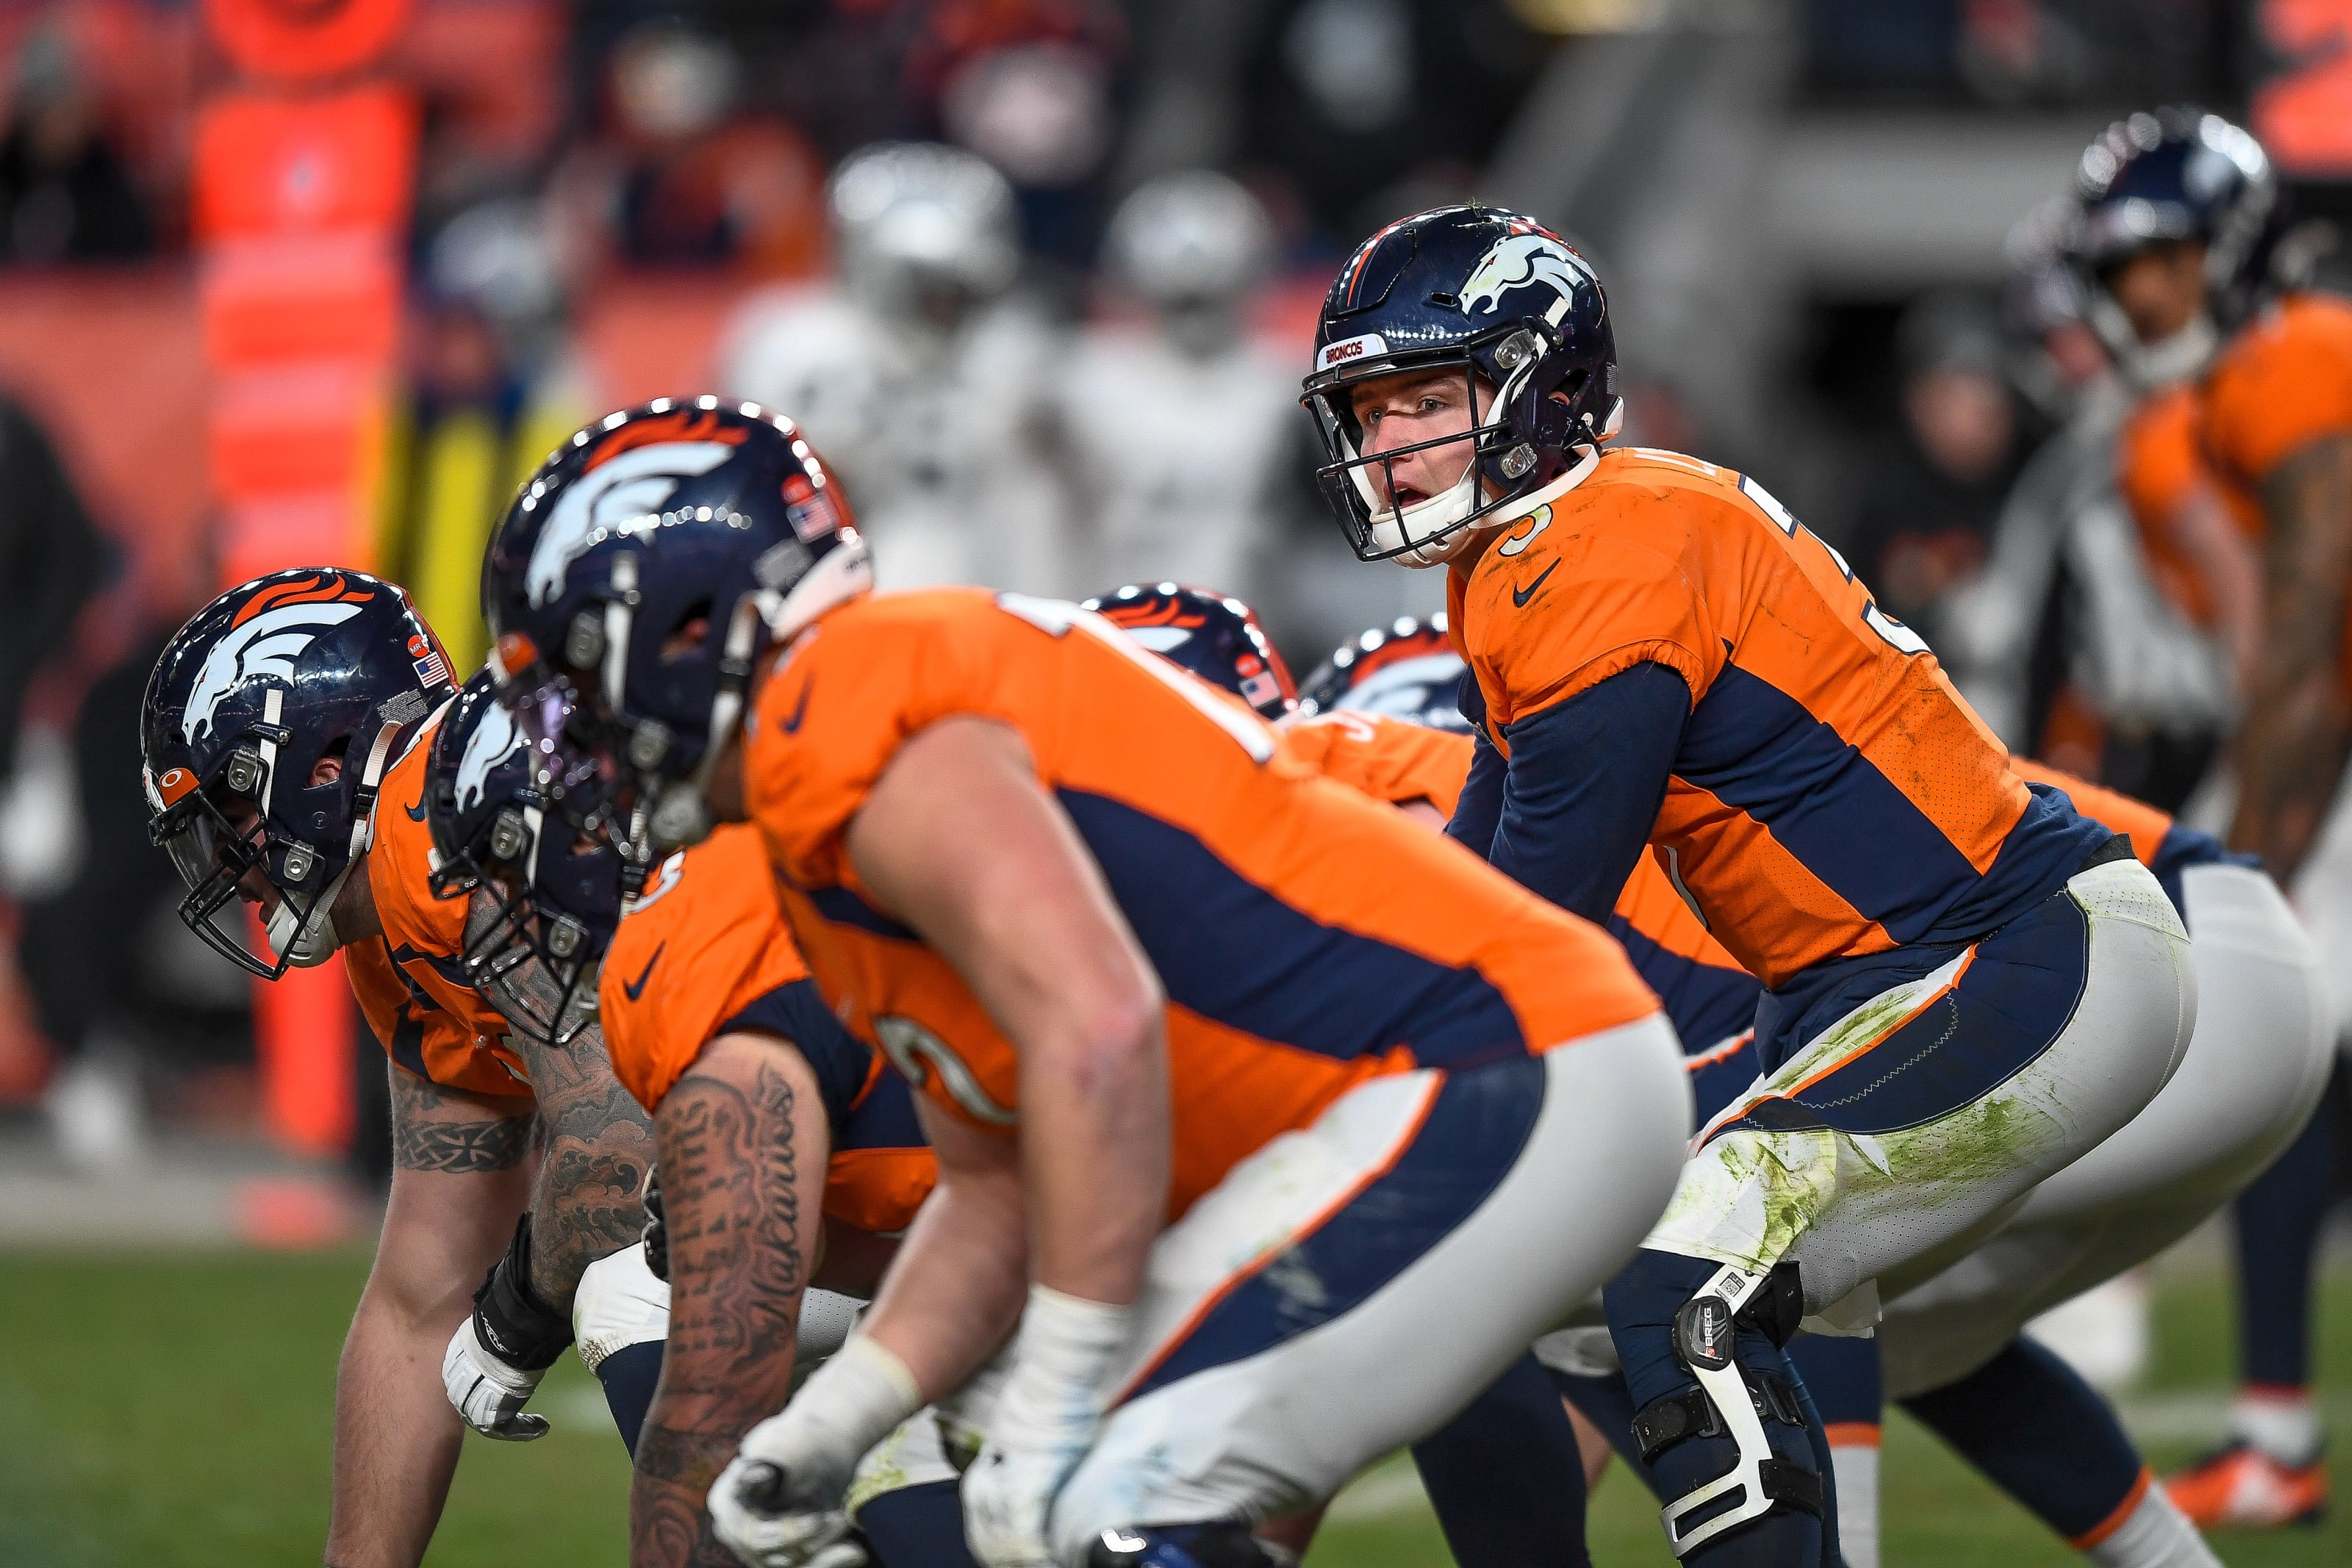 NFL Uniforms 2020: 5 Teams that need to change their uniforms next - Page 6